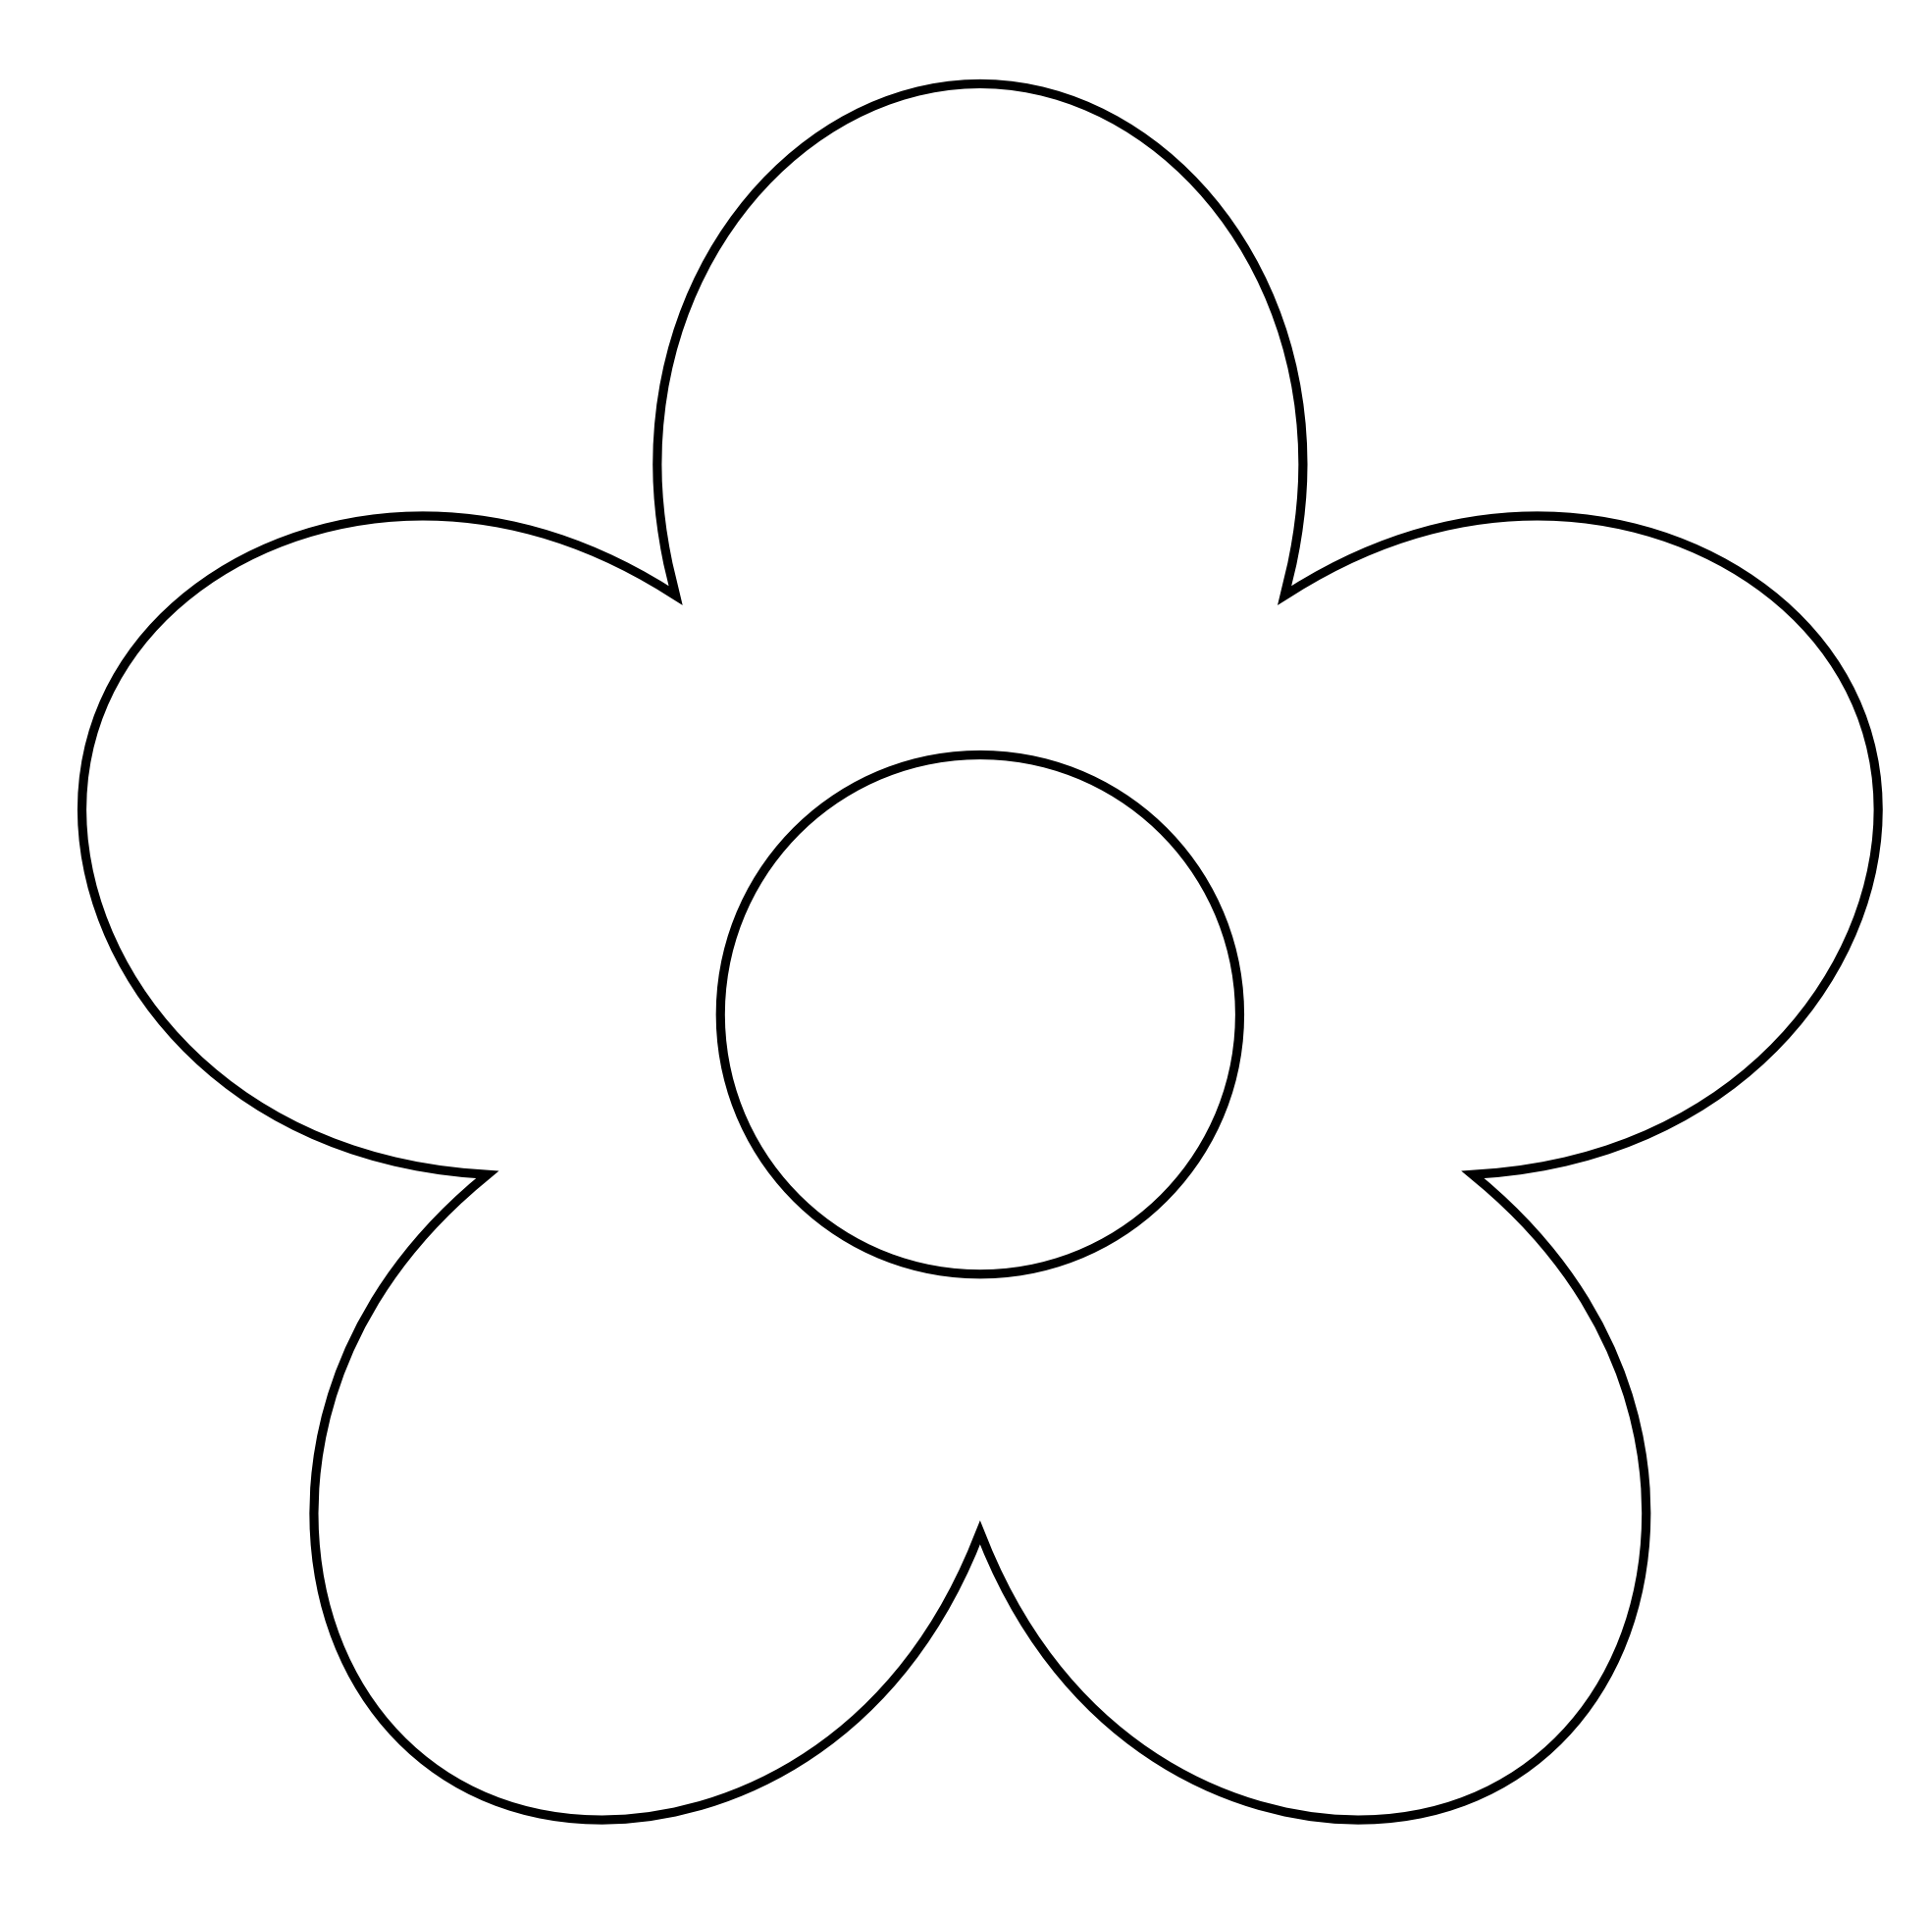 White Flower clipart #9, Download drawings